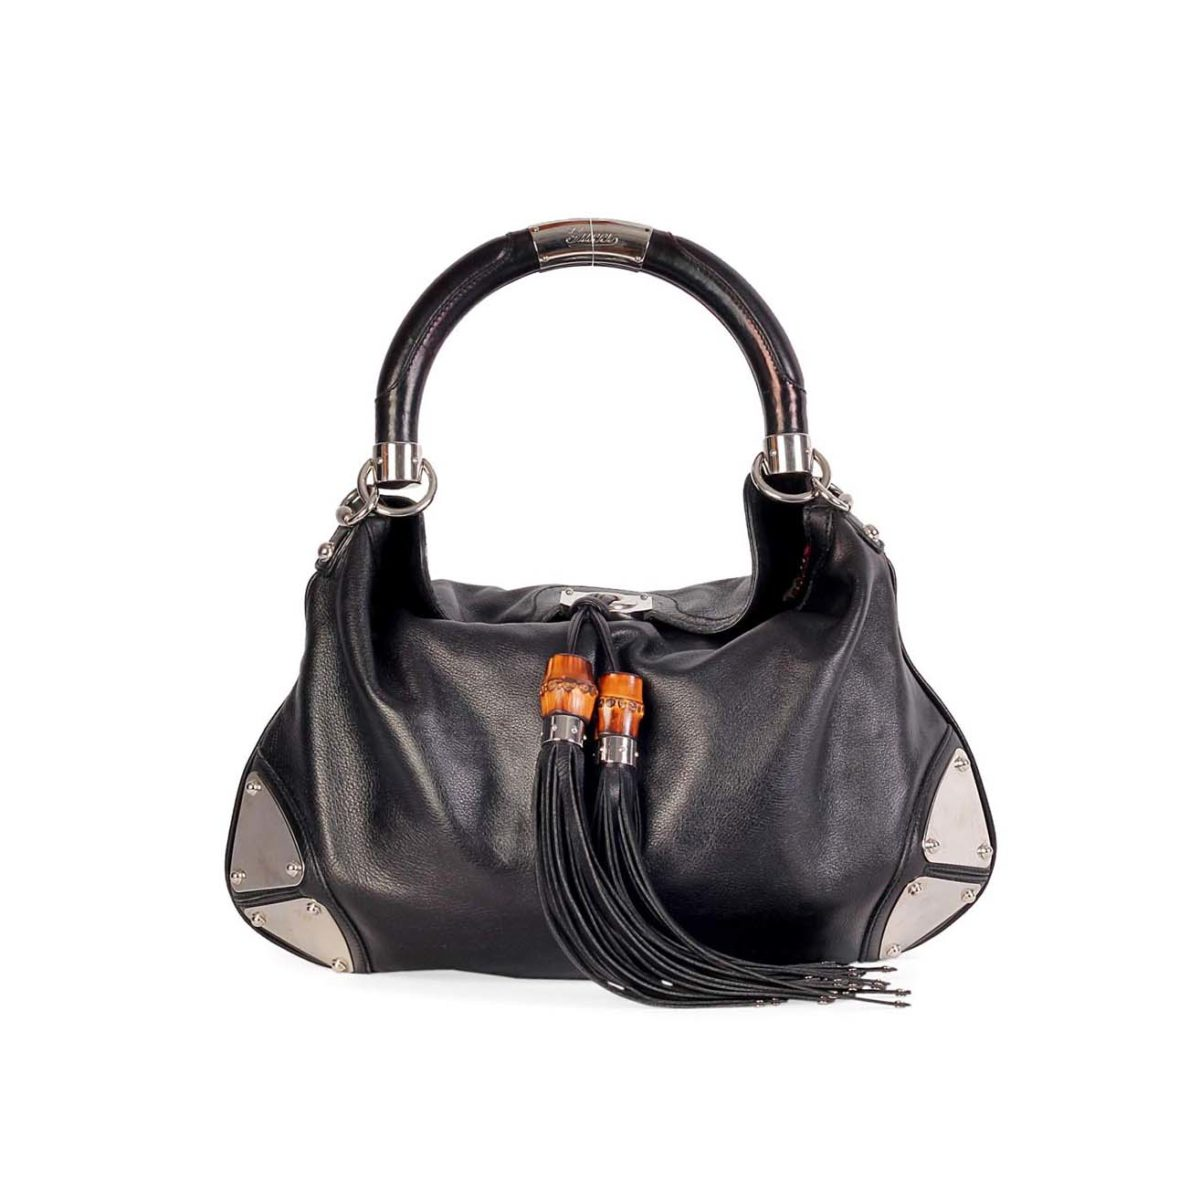 GUCCI Leather Indy Hobo Tassel Bag Medium Black  b22378e85e229